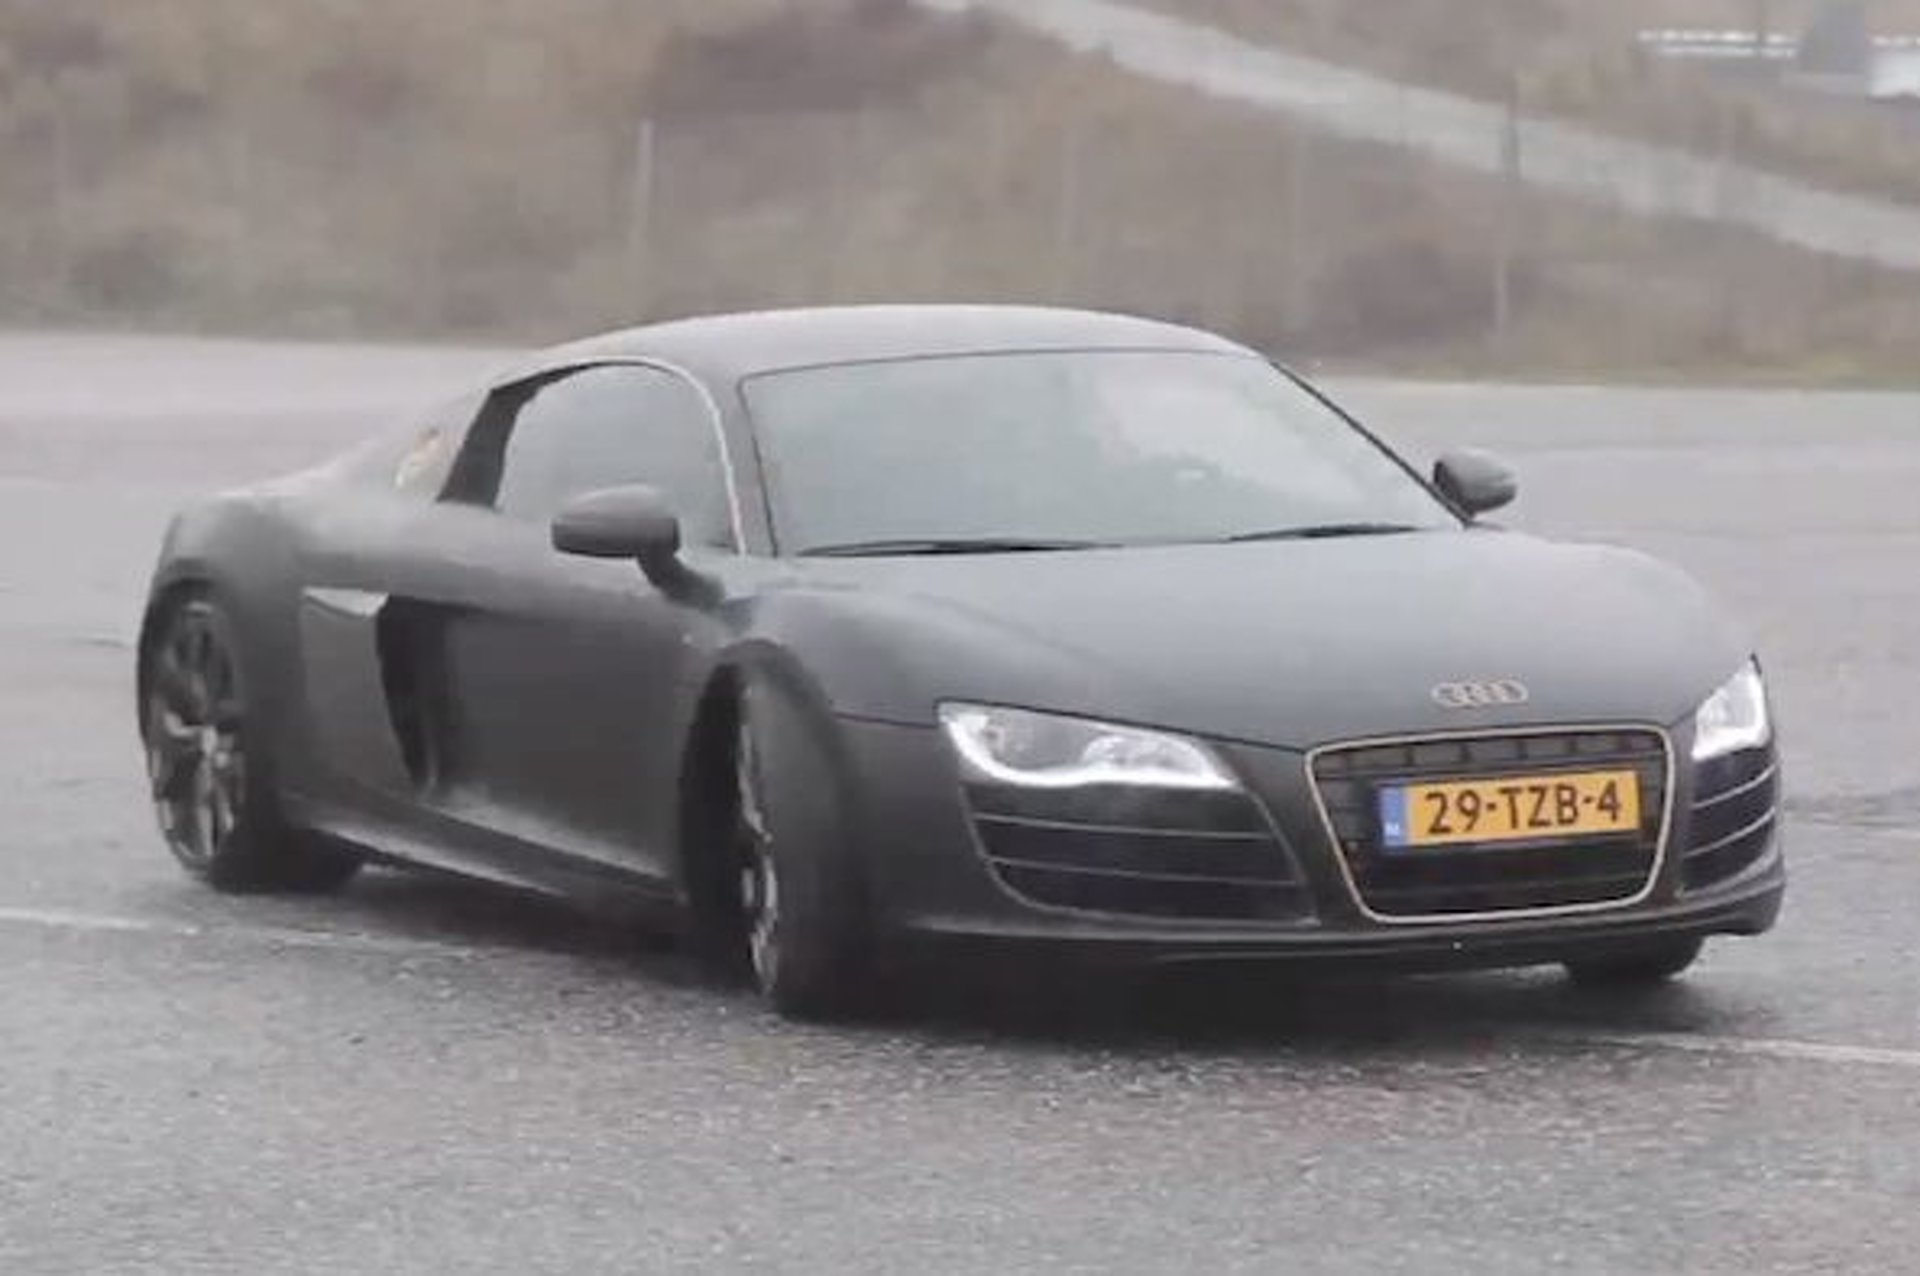 Video: Afrojack Drifts His Audi R8 and Doesn't Crash It